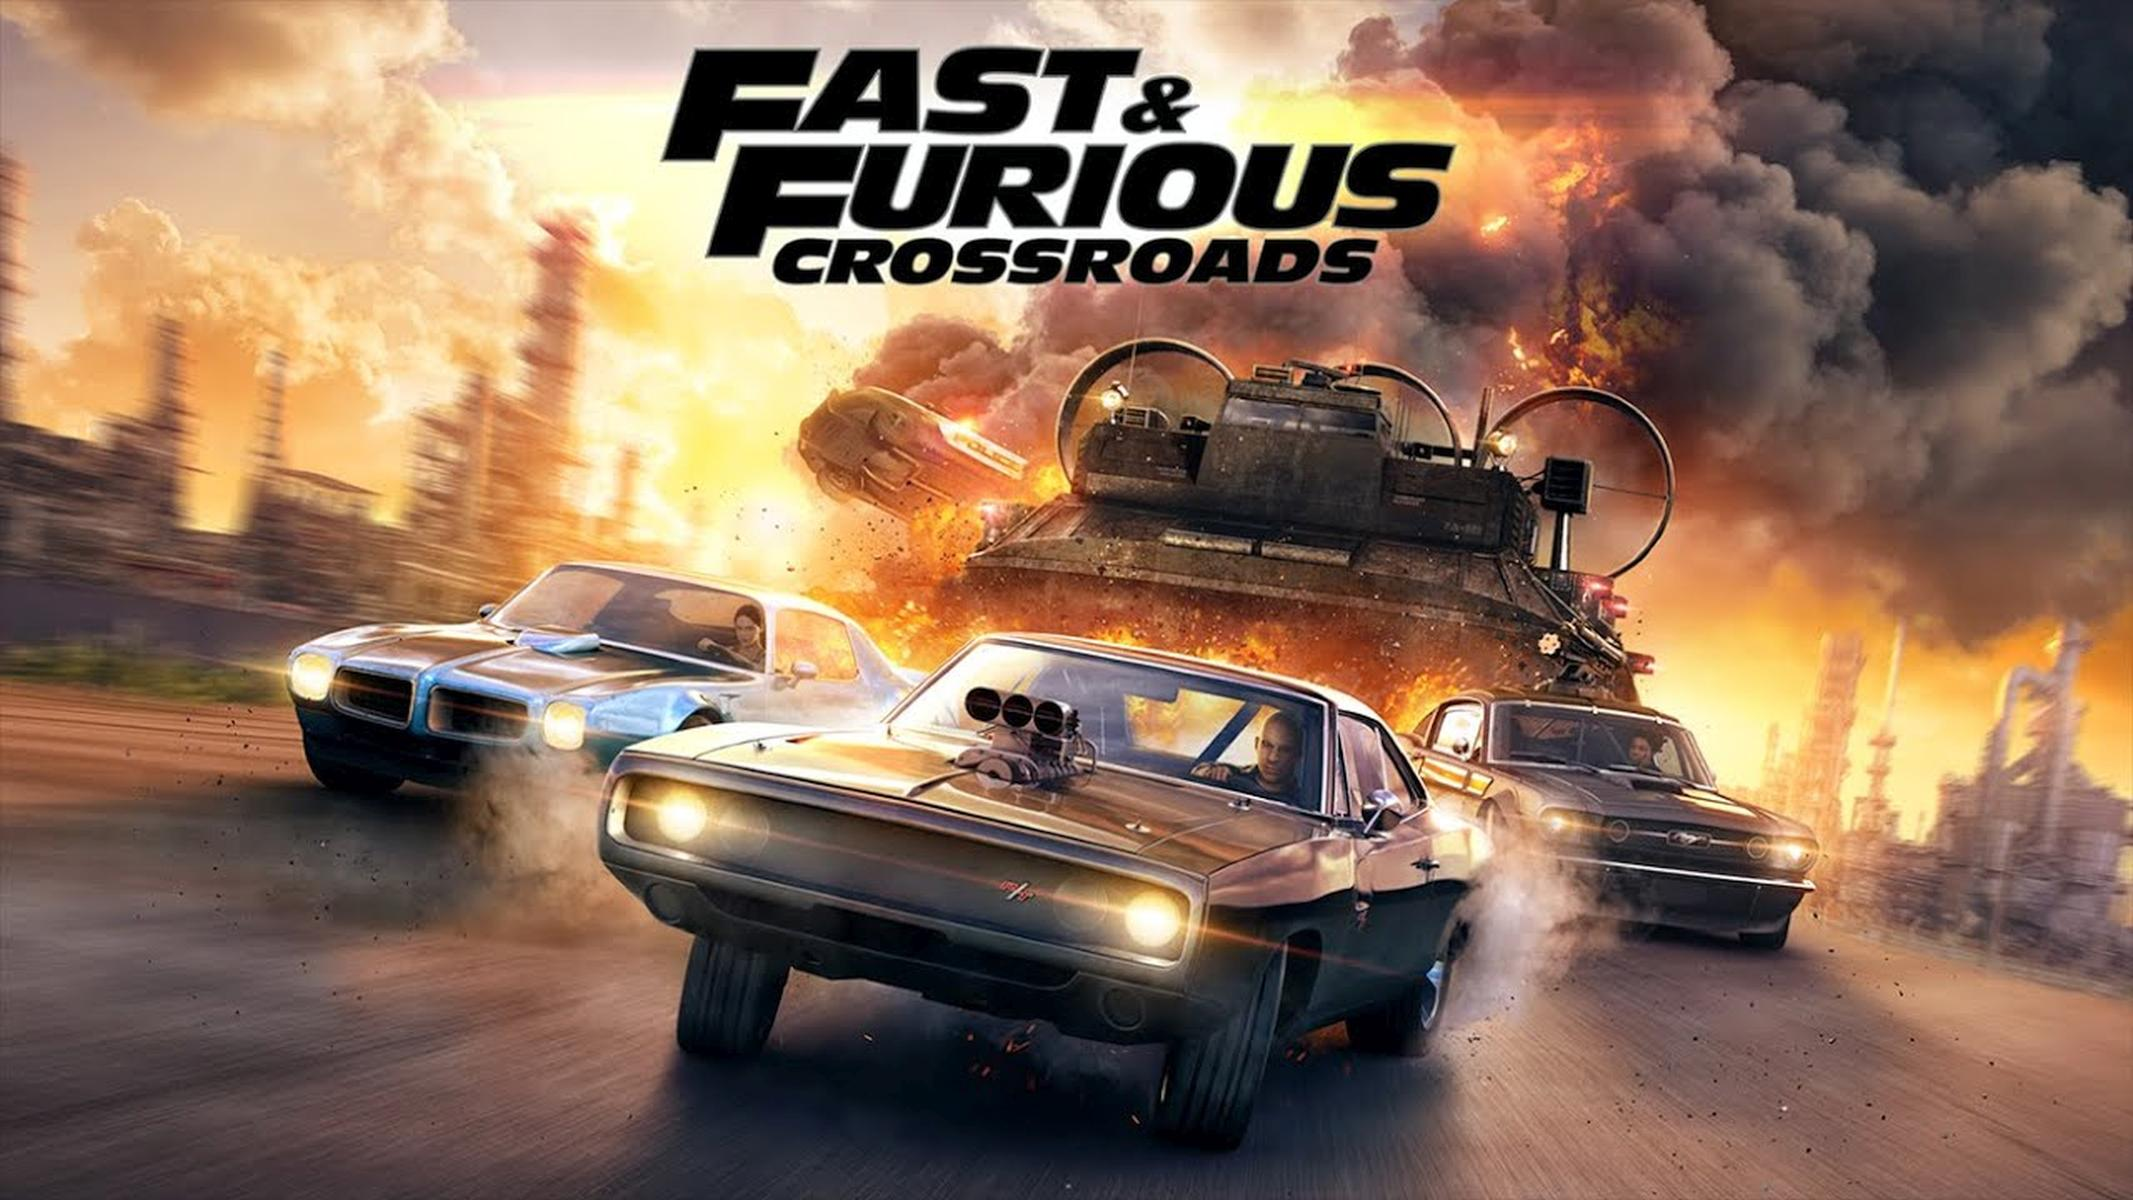 Fast & Furious Crossroads Gameplay Release Date